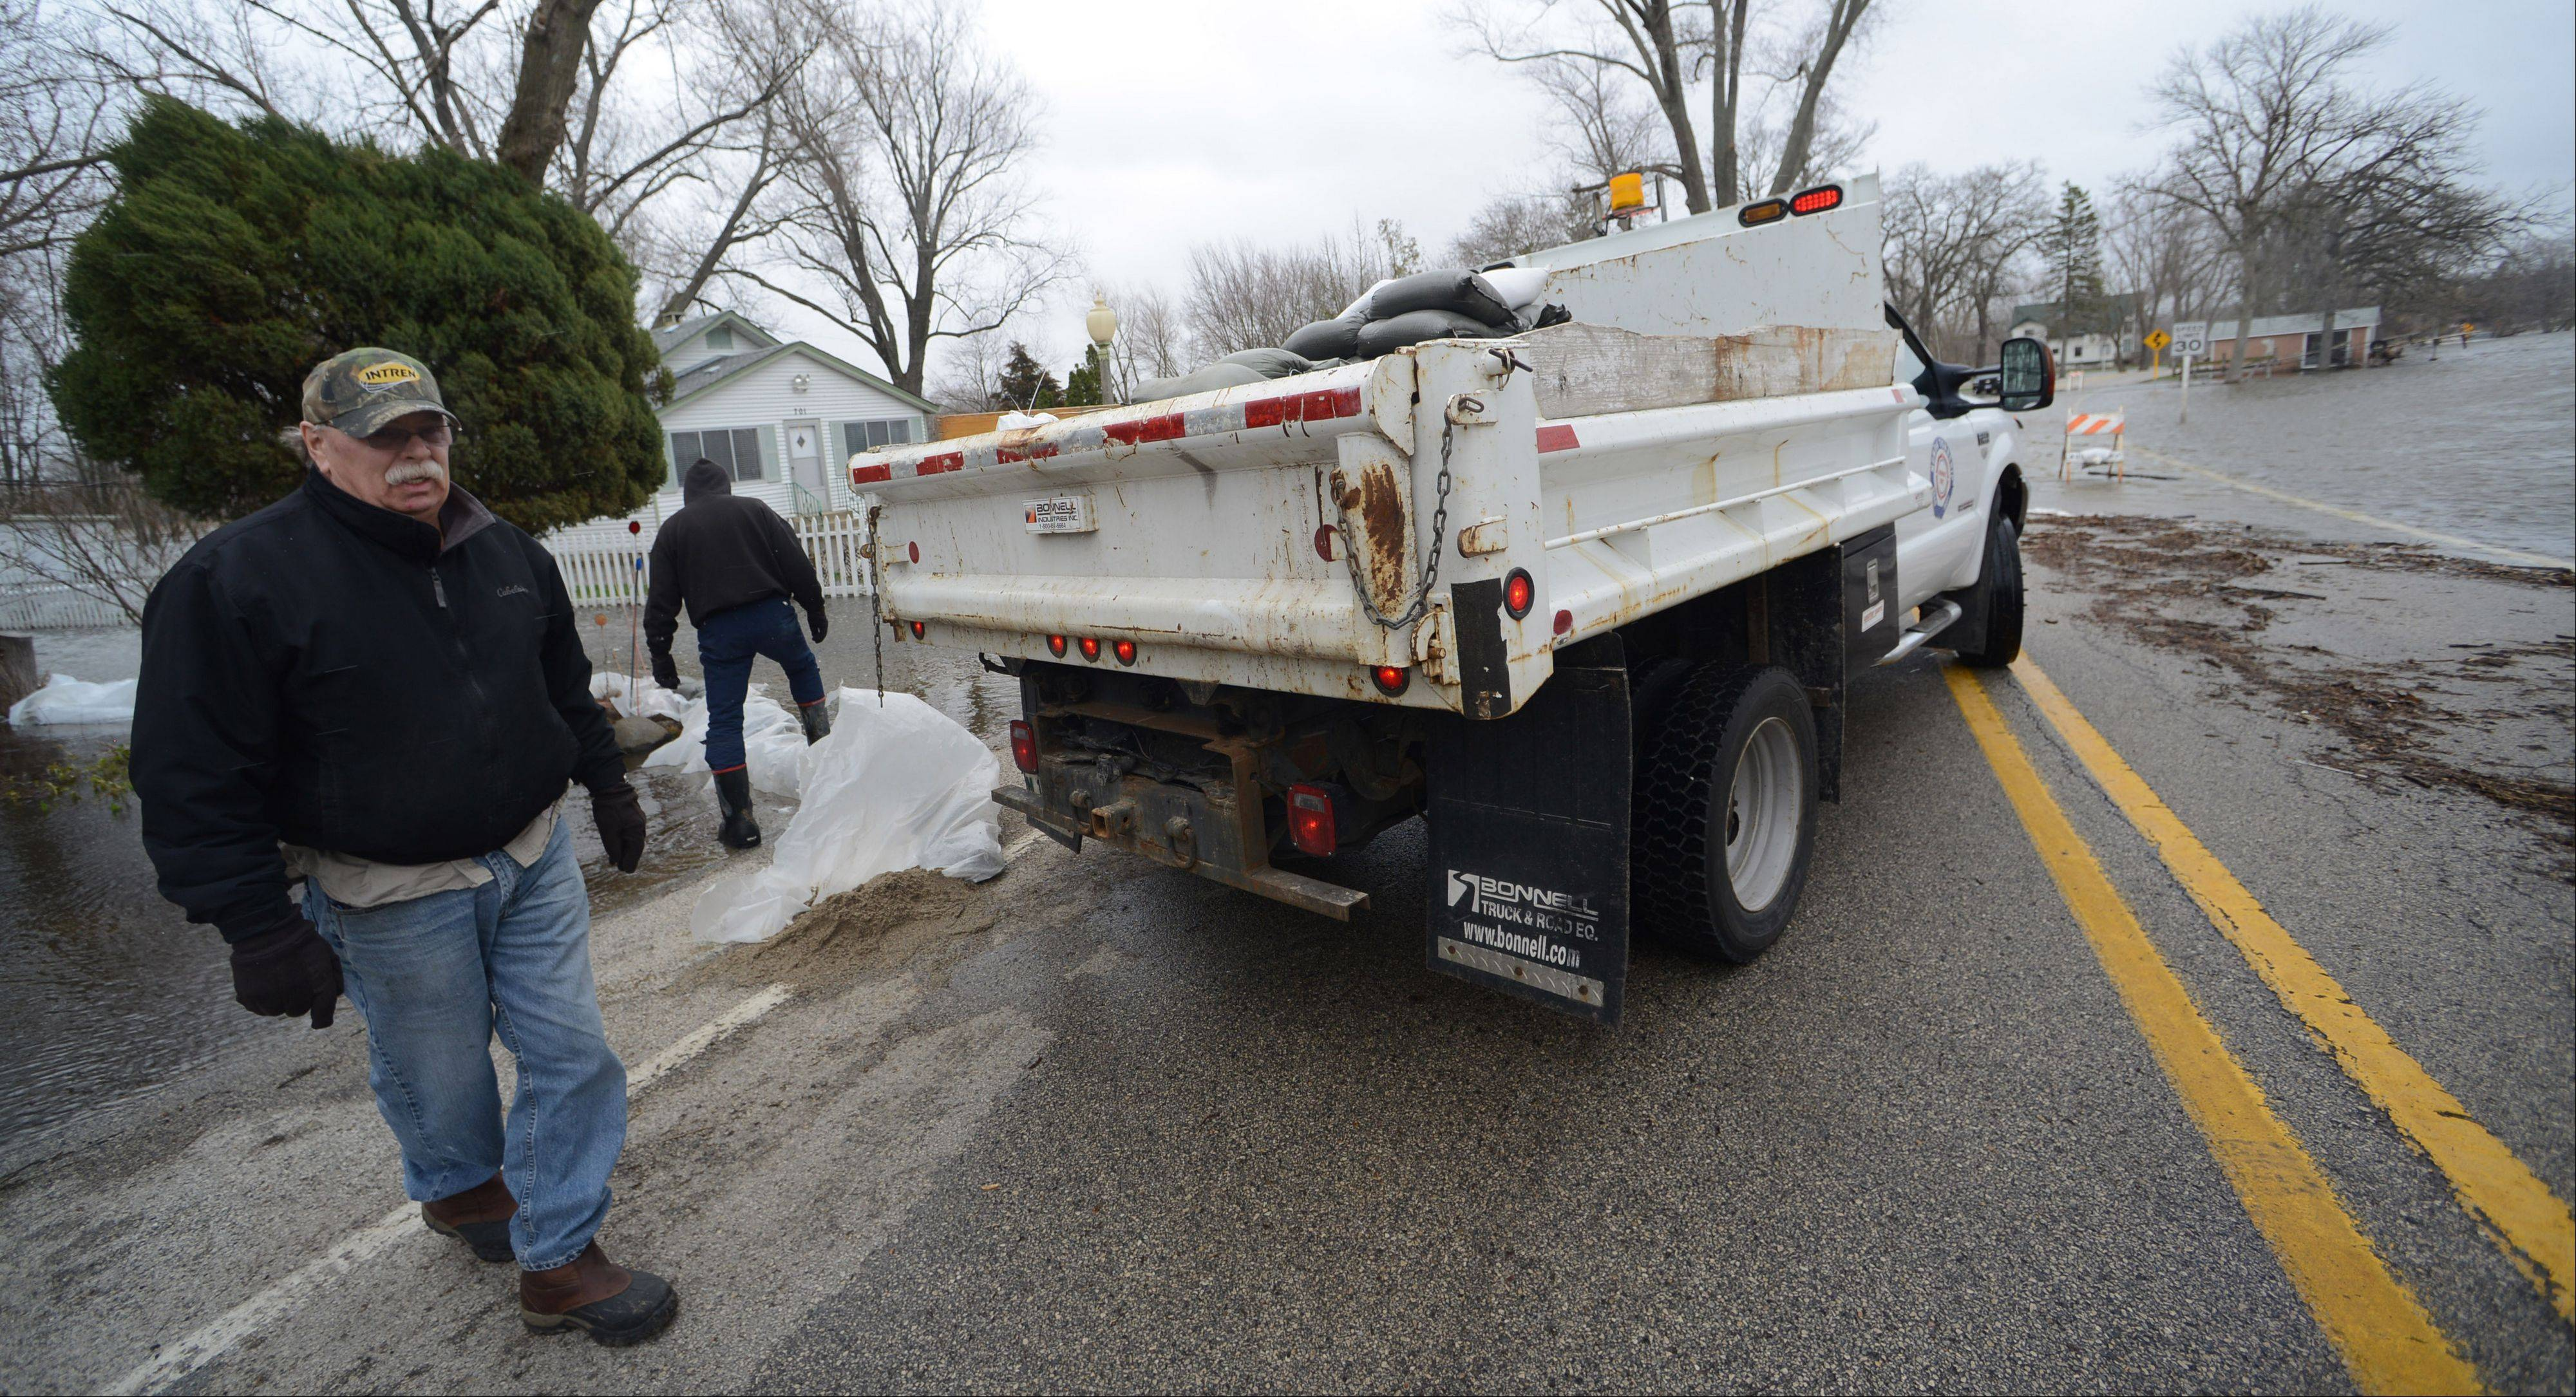 Volunteers work with the Nunda Township Highway Department Greg Tricker to deliver sandbags to homeowners on Rawson Bridge Road along the Fox River Friday morning.